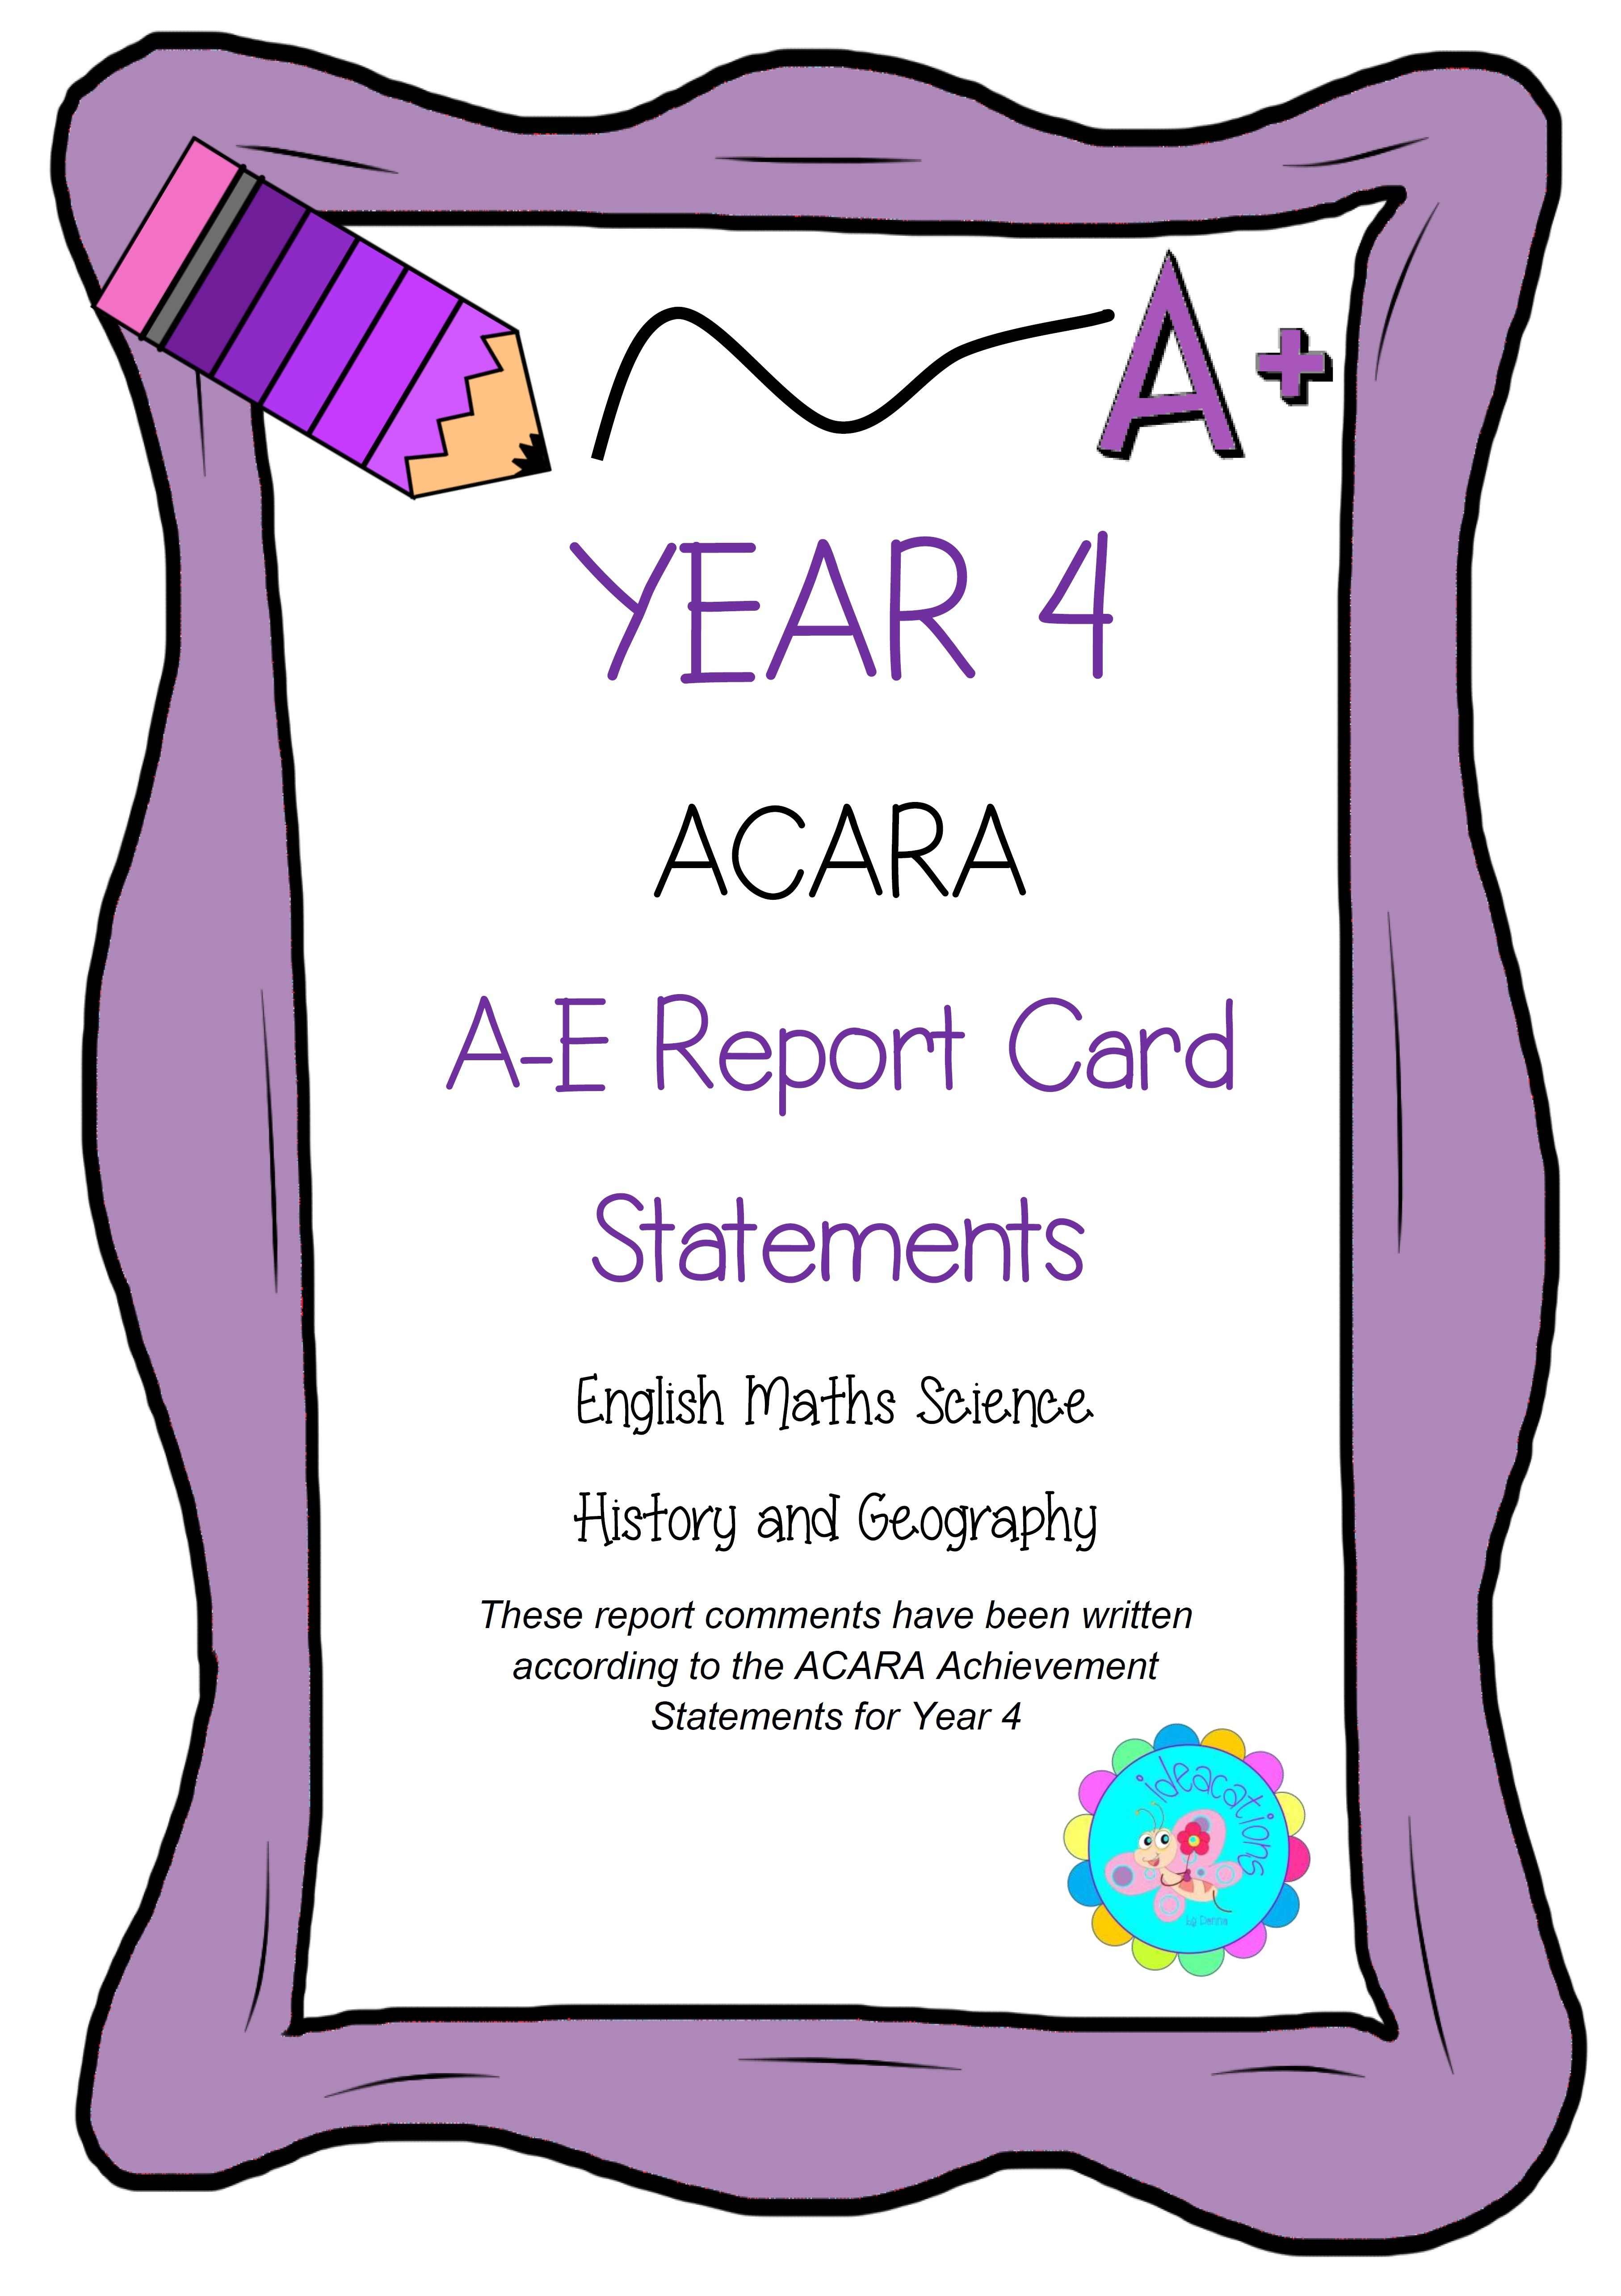 ACARA Report Comments. A - E Report Card Comments that